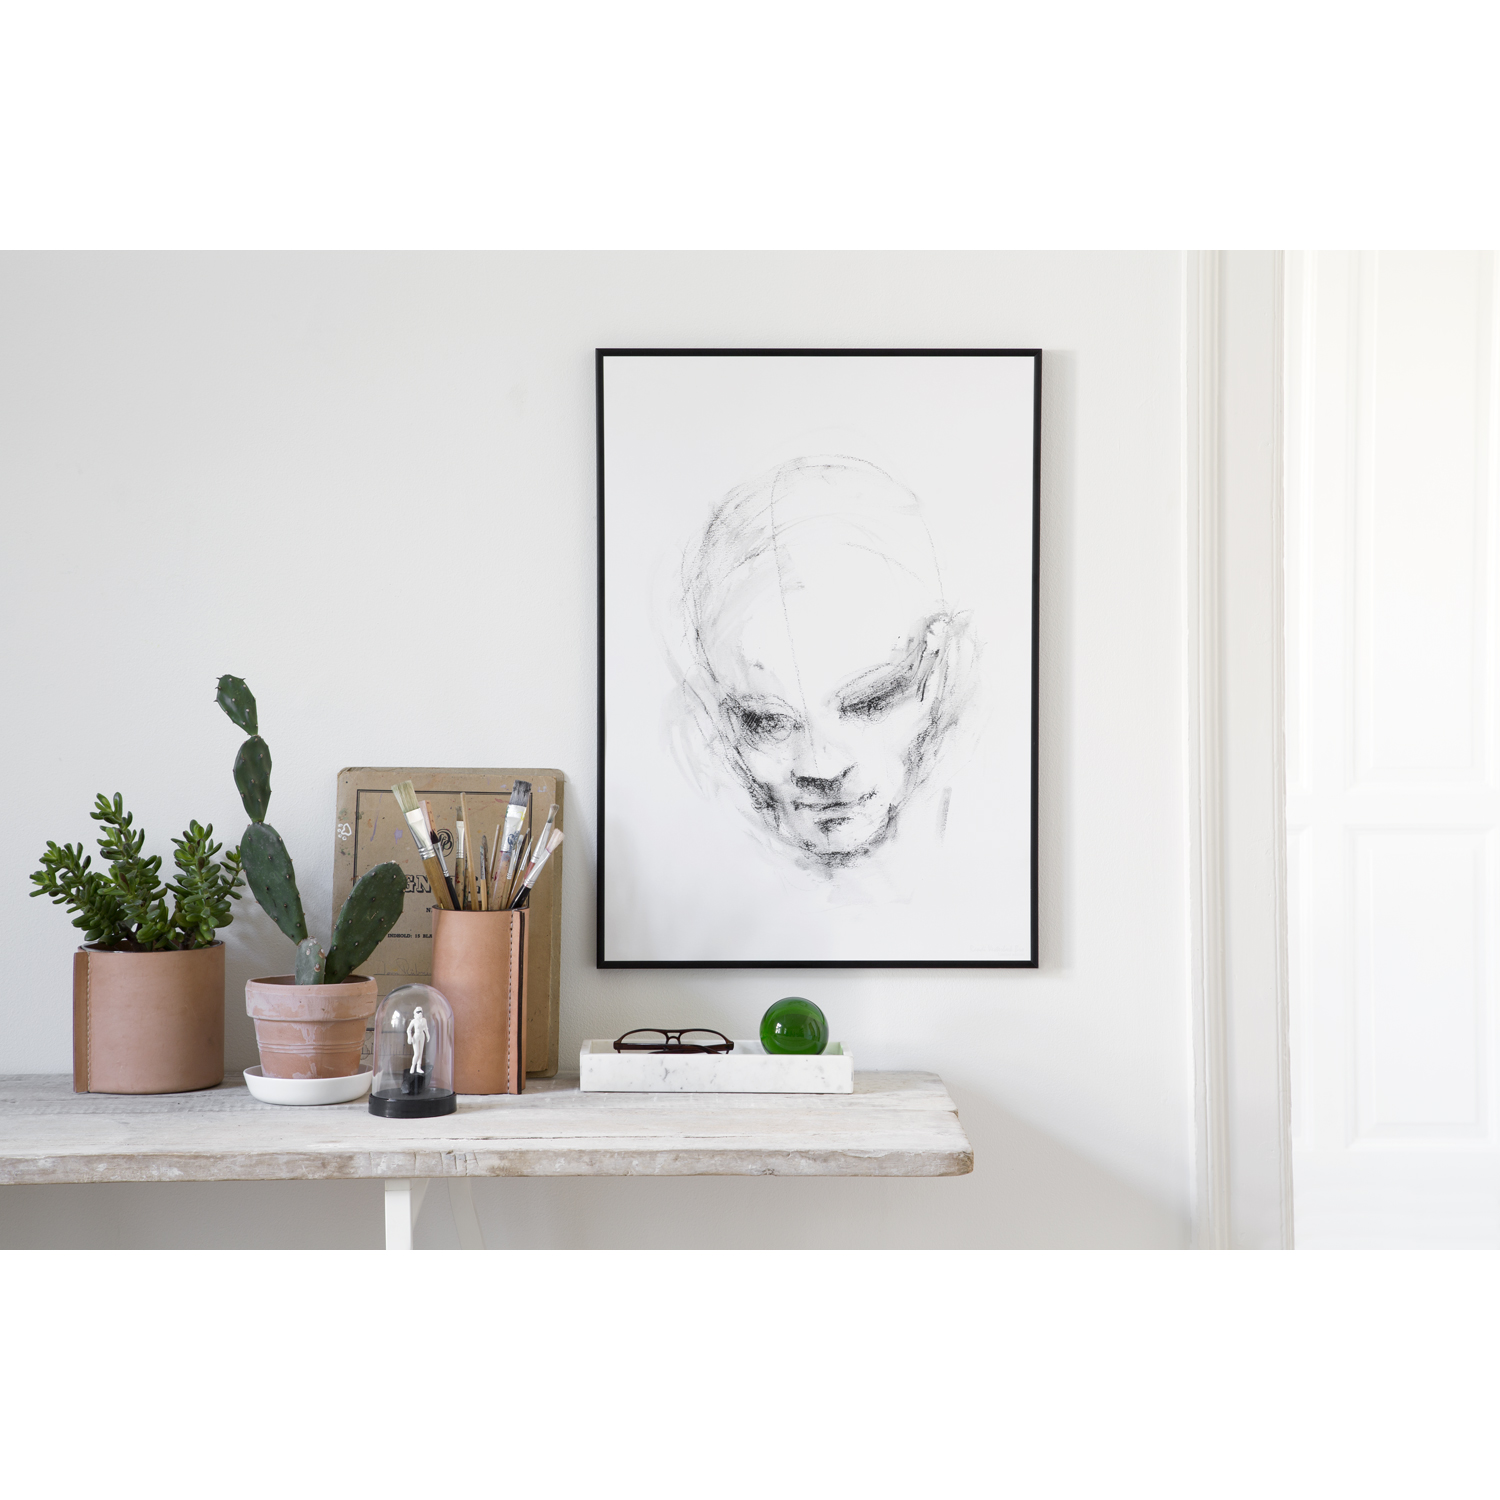 By Yourself poster, 50x70 cm